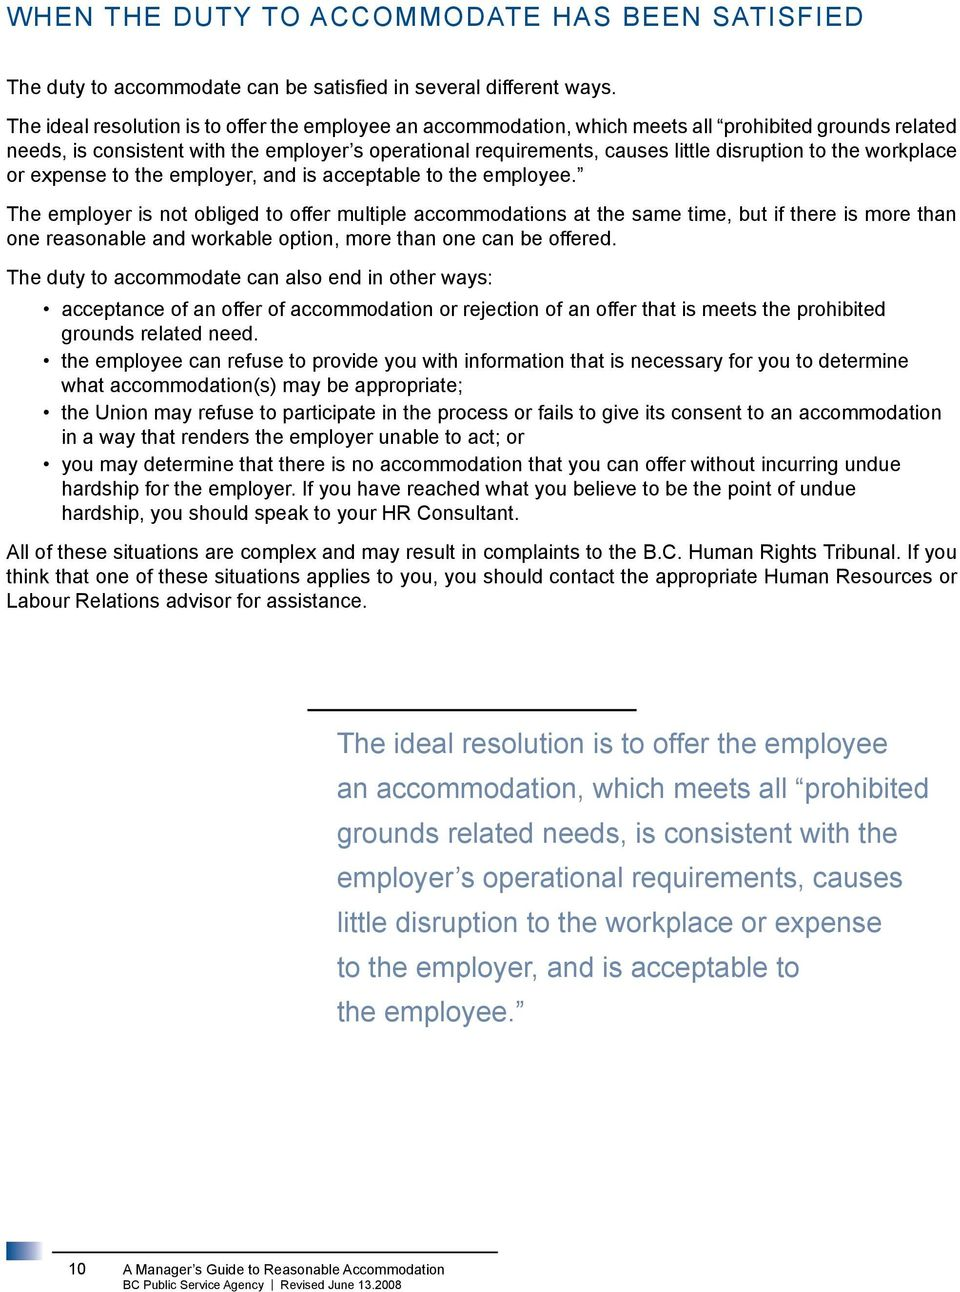 to the workplace or expense to the employer, and is acceptable to the employee.